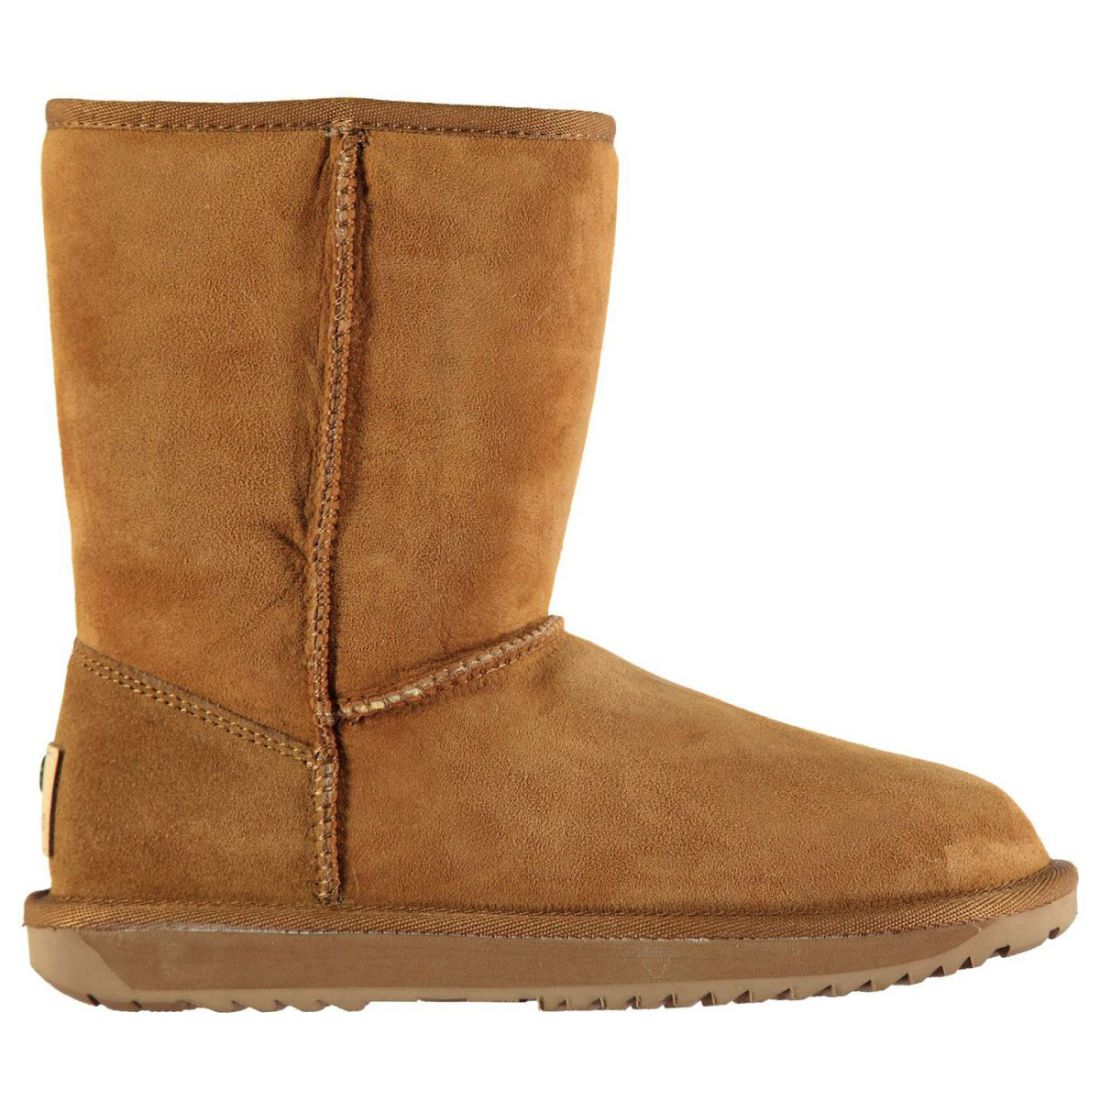 Firetrap Womens Coven Snug Boots Slip On Faux Fur Suede Winter Textured